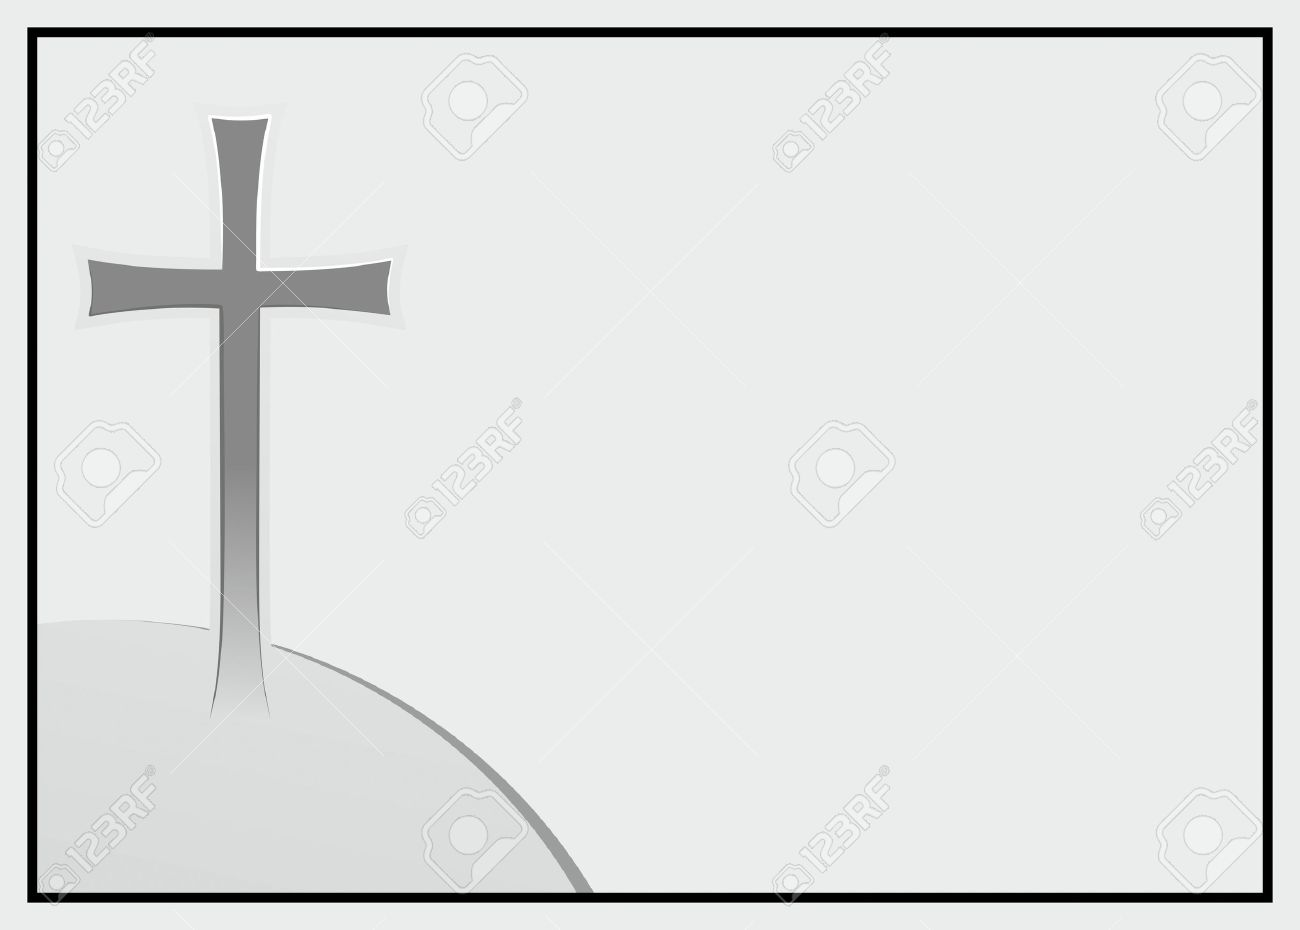 Decorative Frame With Cross For Obituary Notices Stock Photo ...